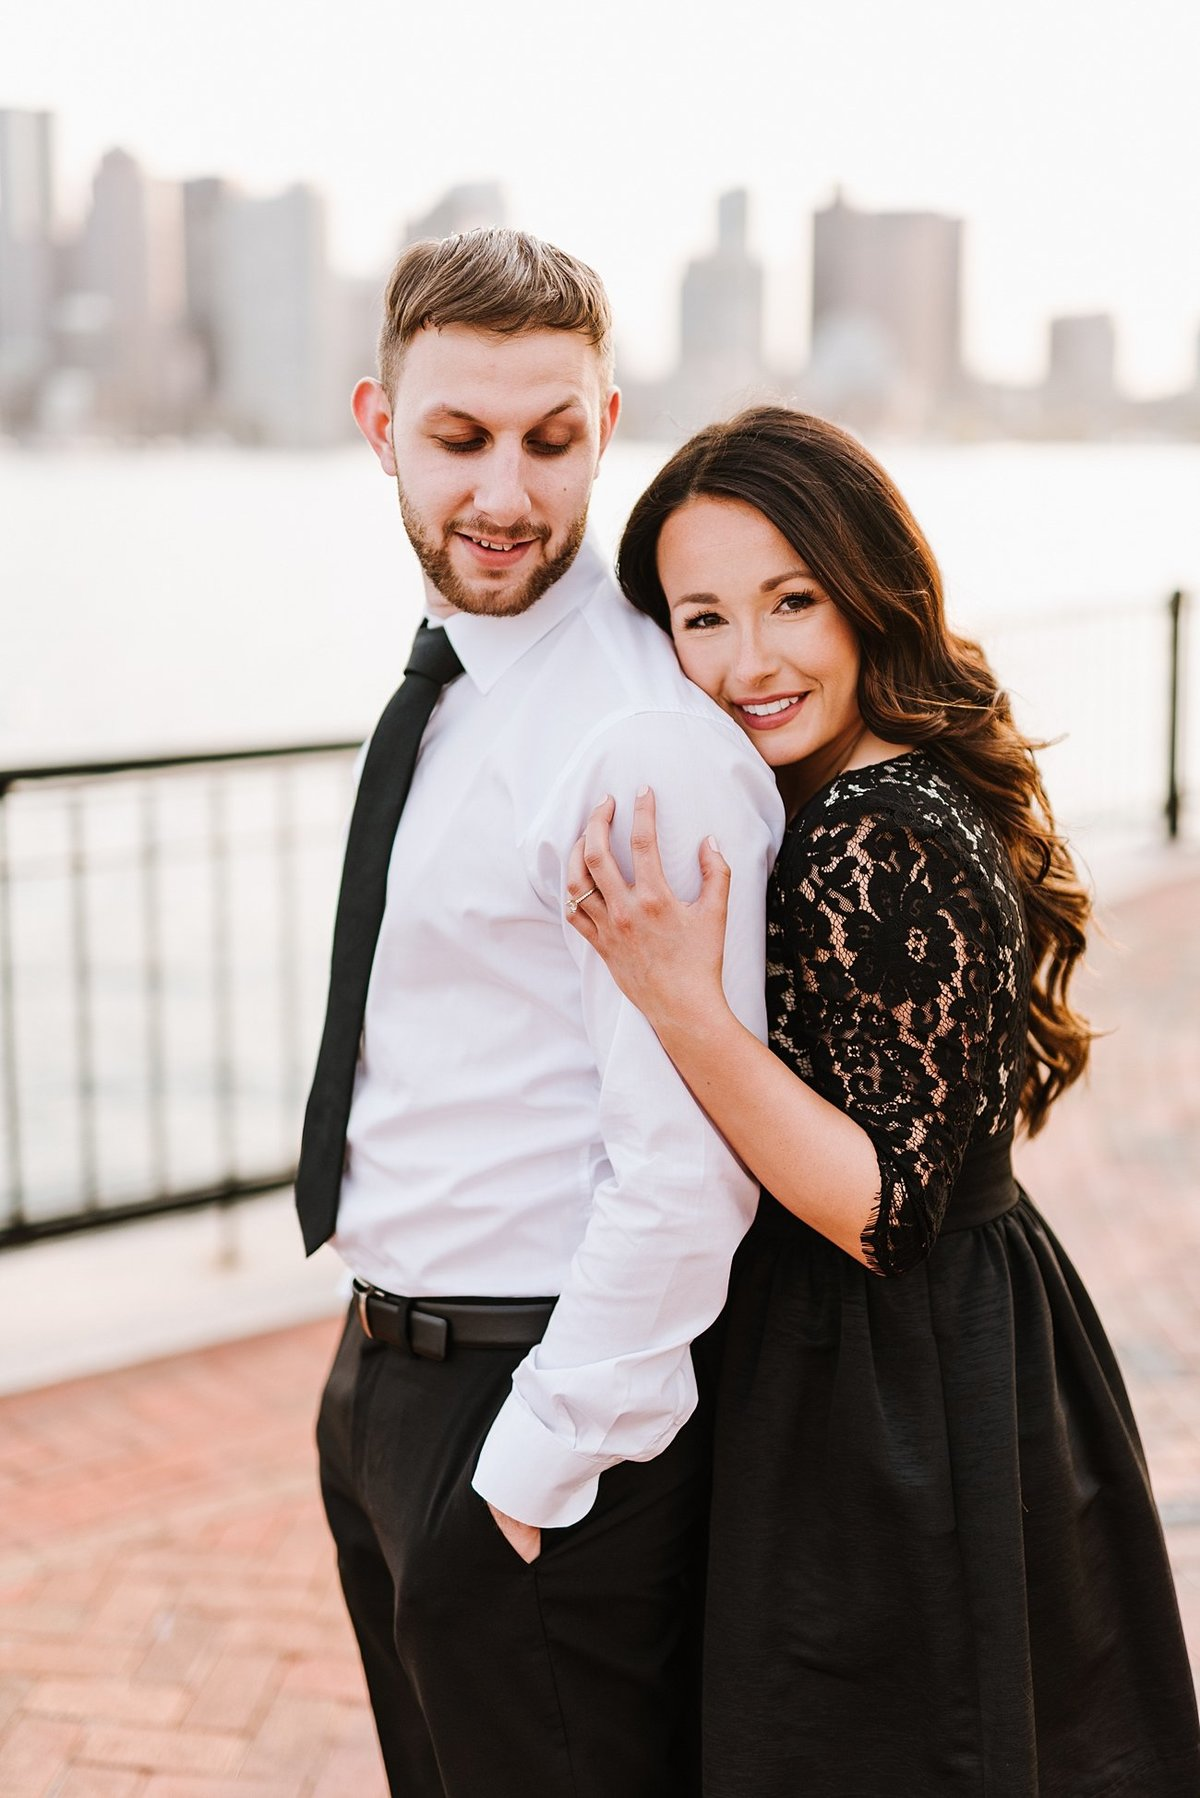 piers-park-engagement-session-boston-wedding-photographer-photo_0018